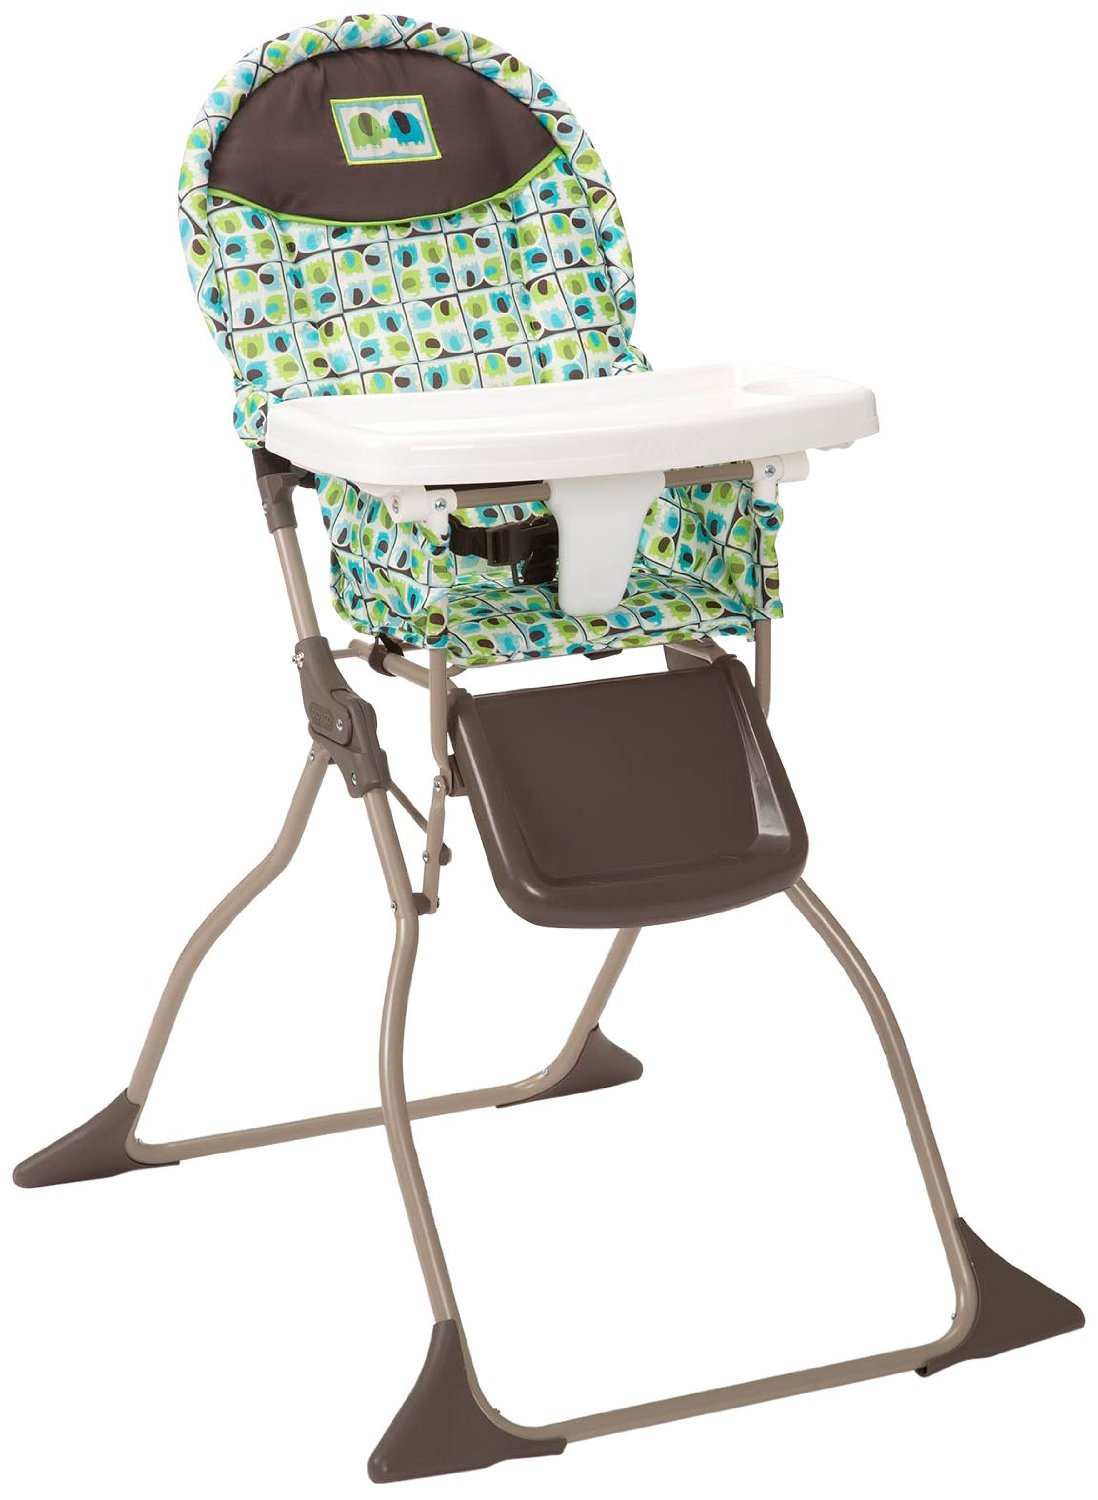 Best High Chair Review The Top 8 Best Baby High Chairs In 2018 Reviews And